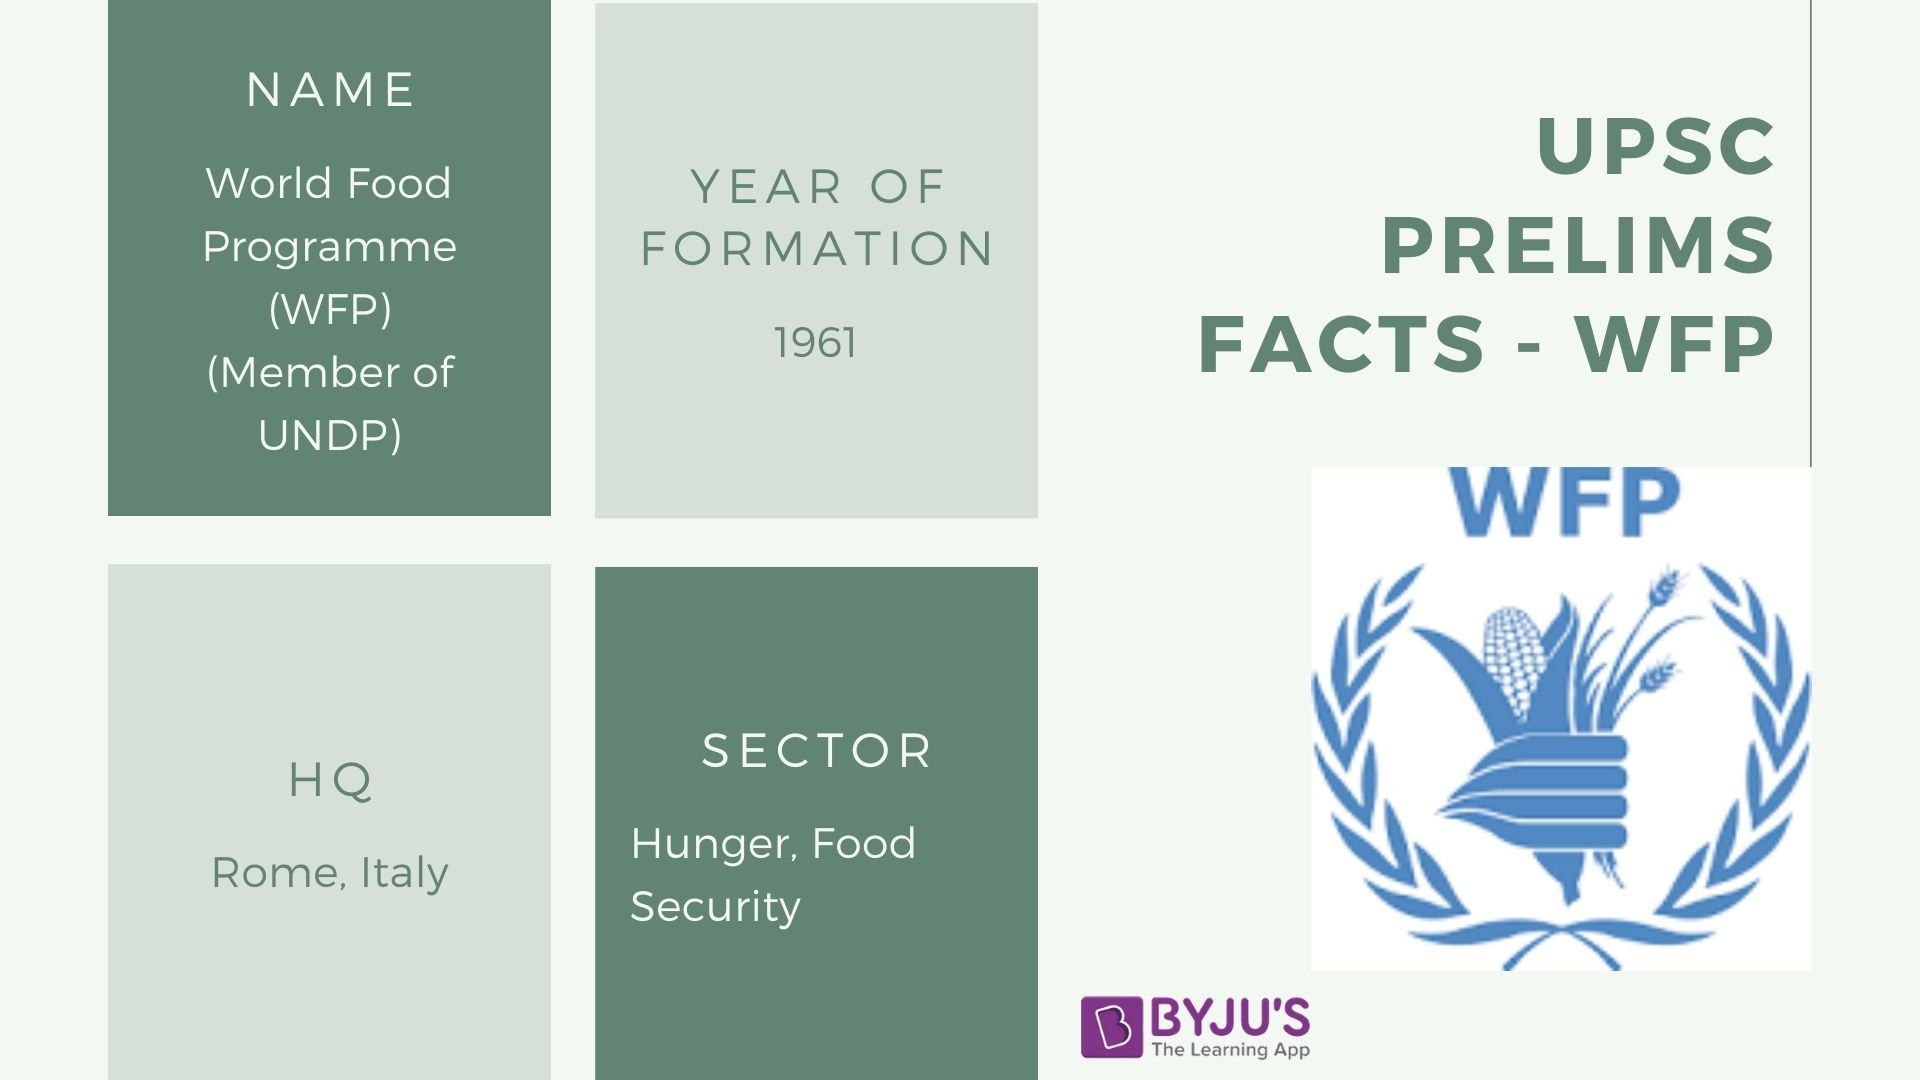 World Food Programme Wfp Wins Nobel Peace Prize 2020 For Its Work Know More